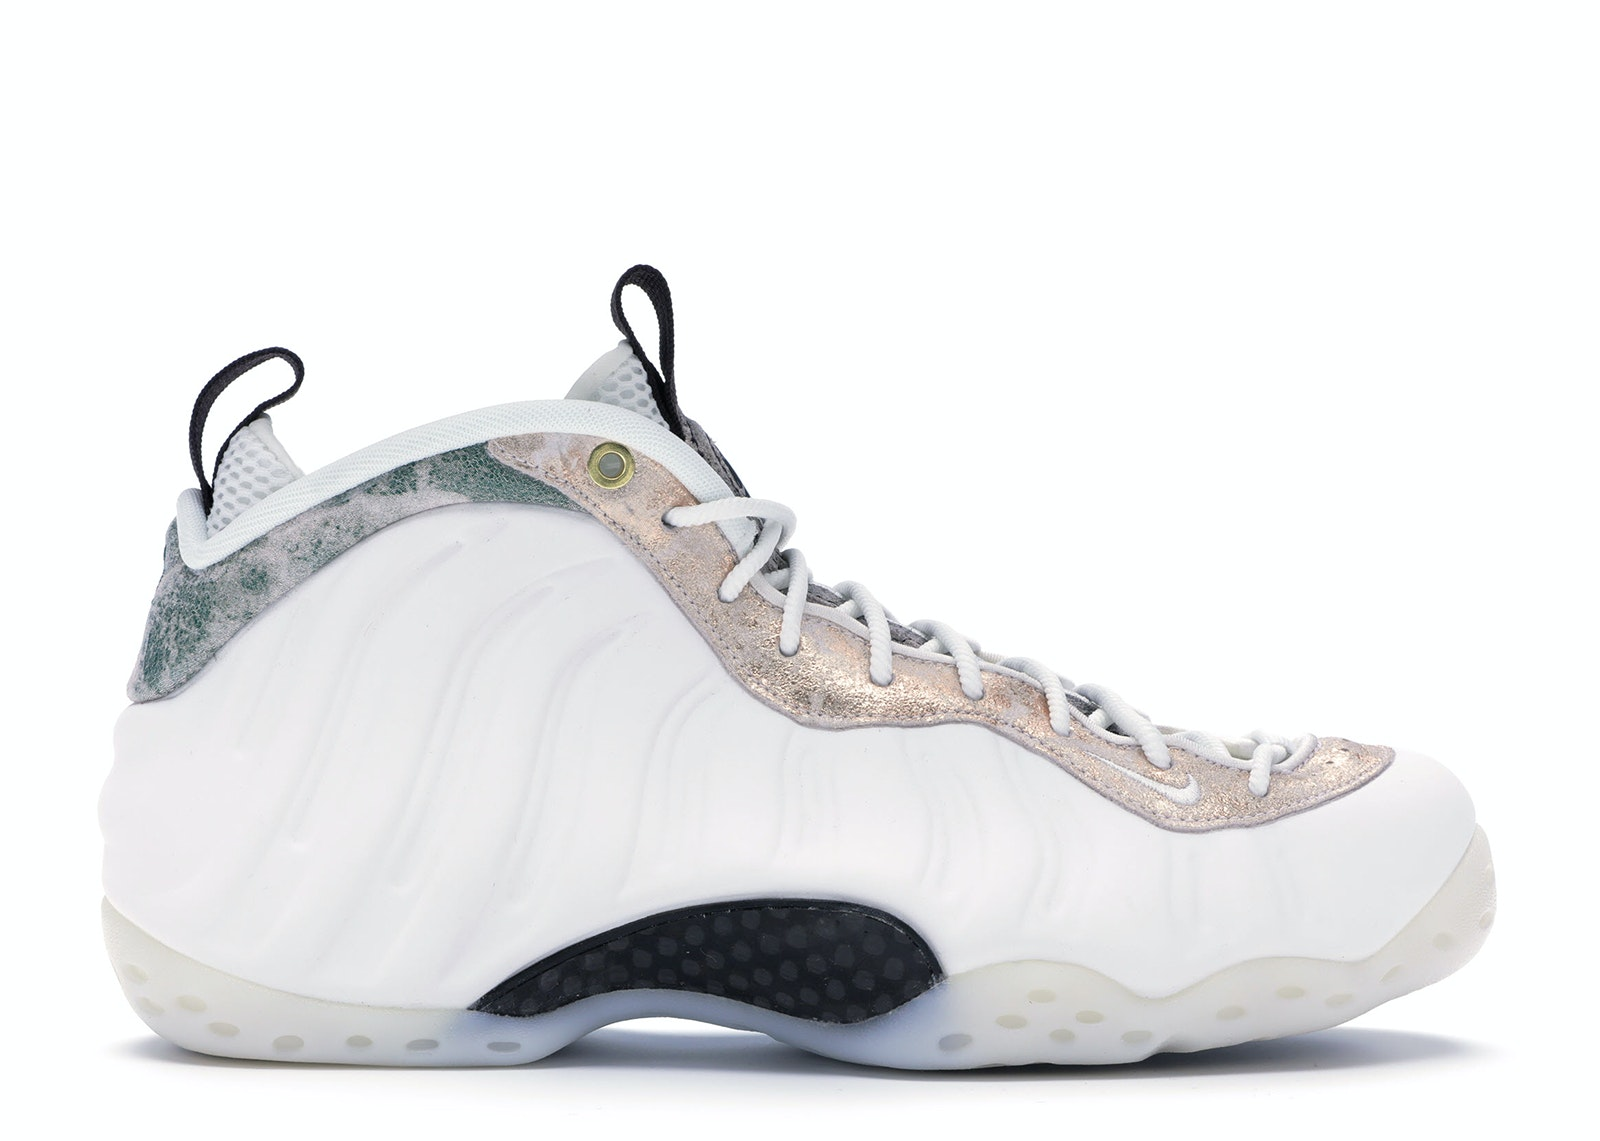 Nike Finally Releases Air Foamposite One PE Memphis Tigers?